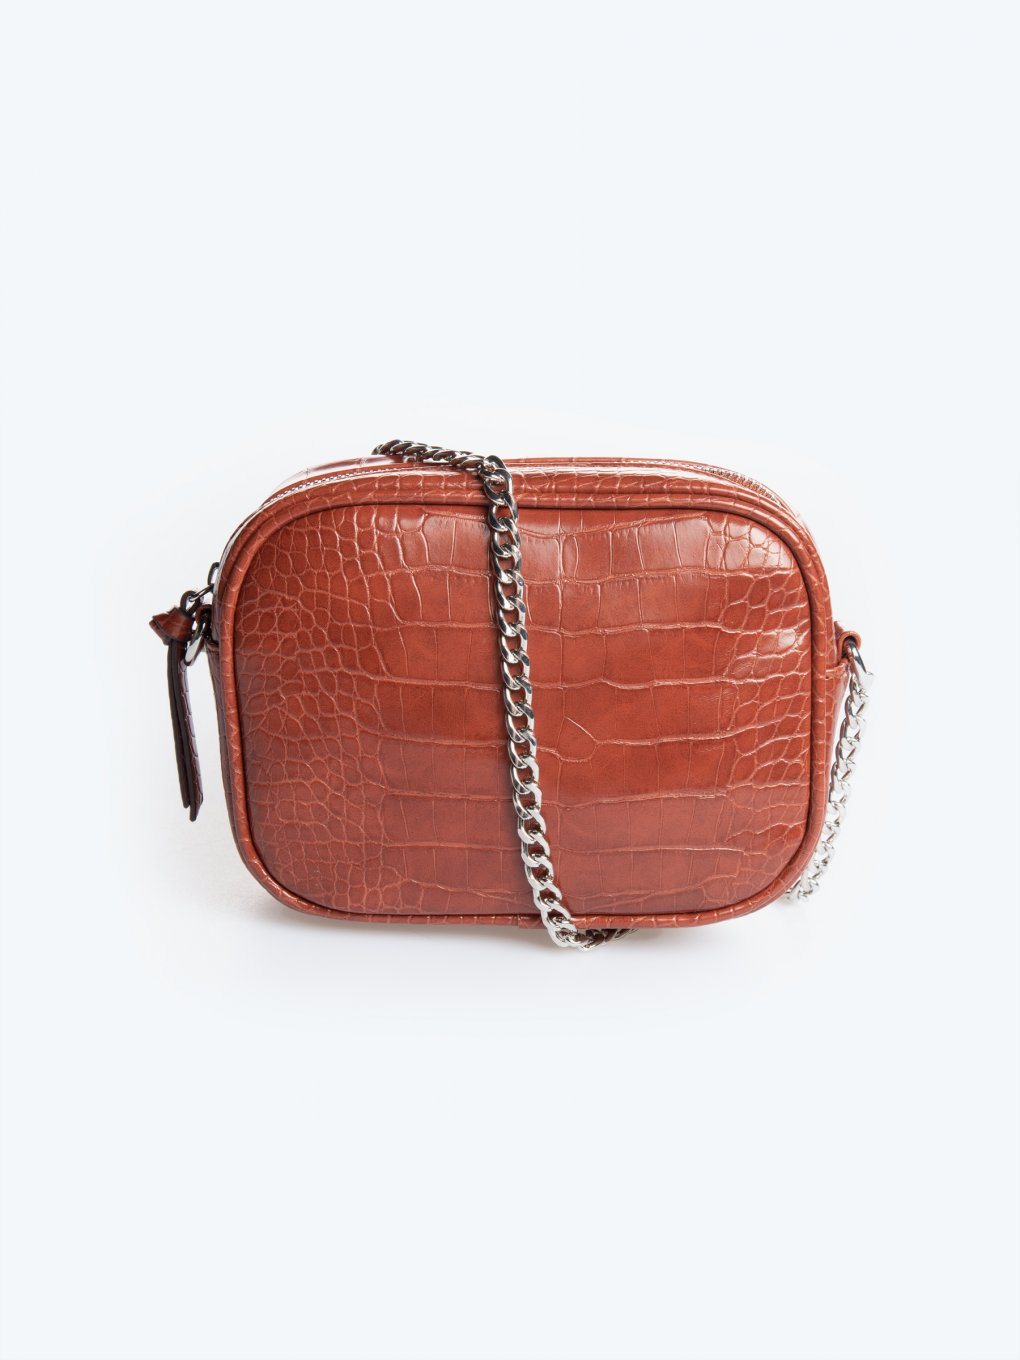 Croc effect crossbody bag with chain strap